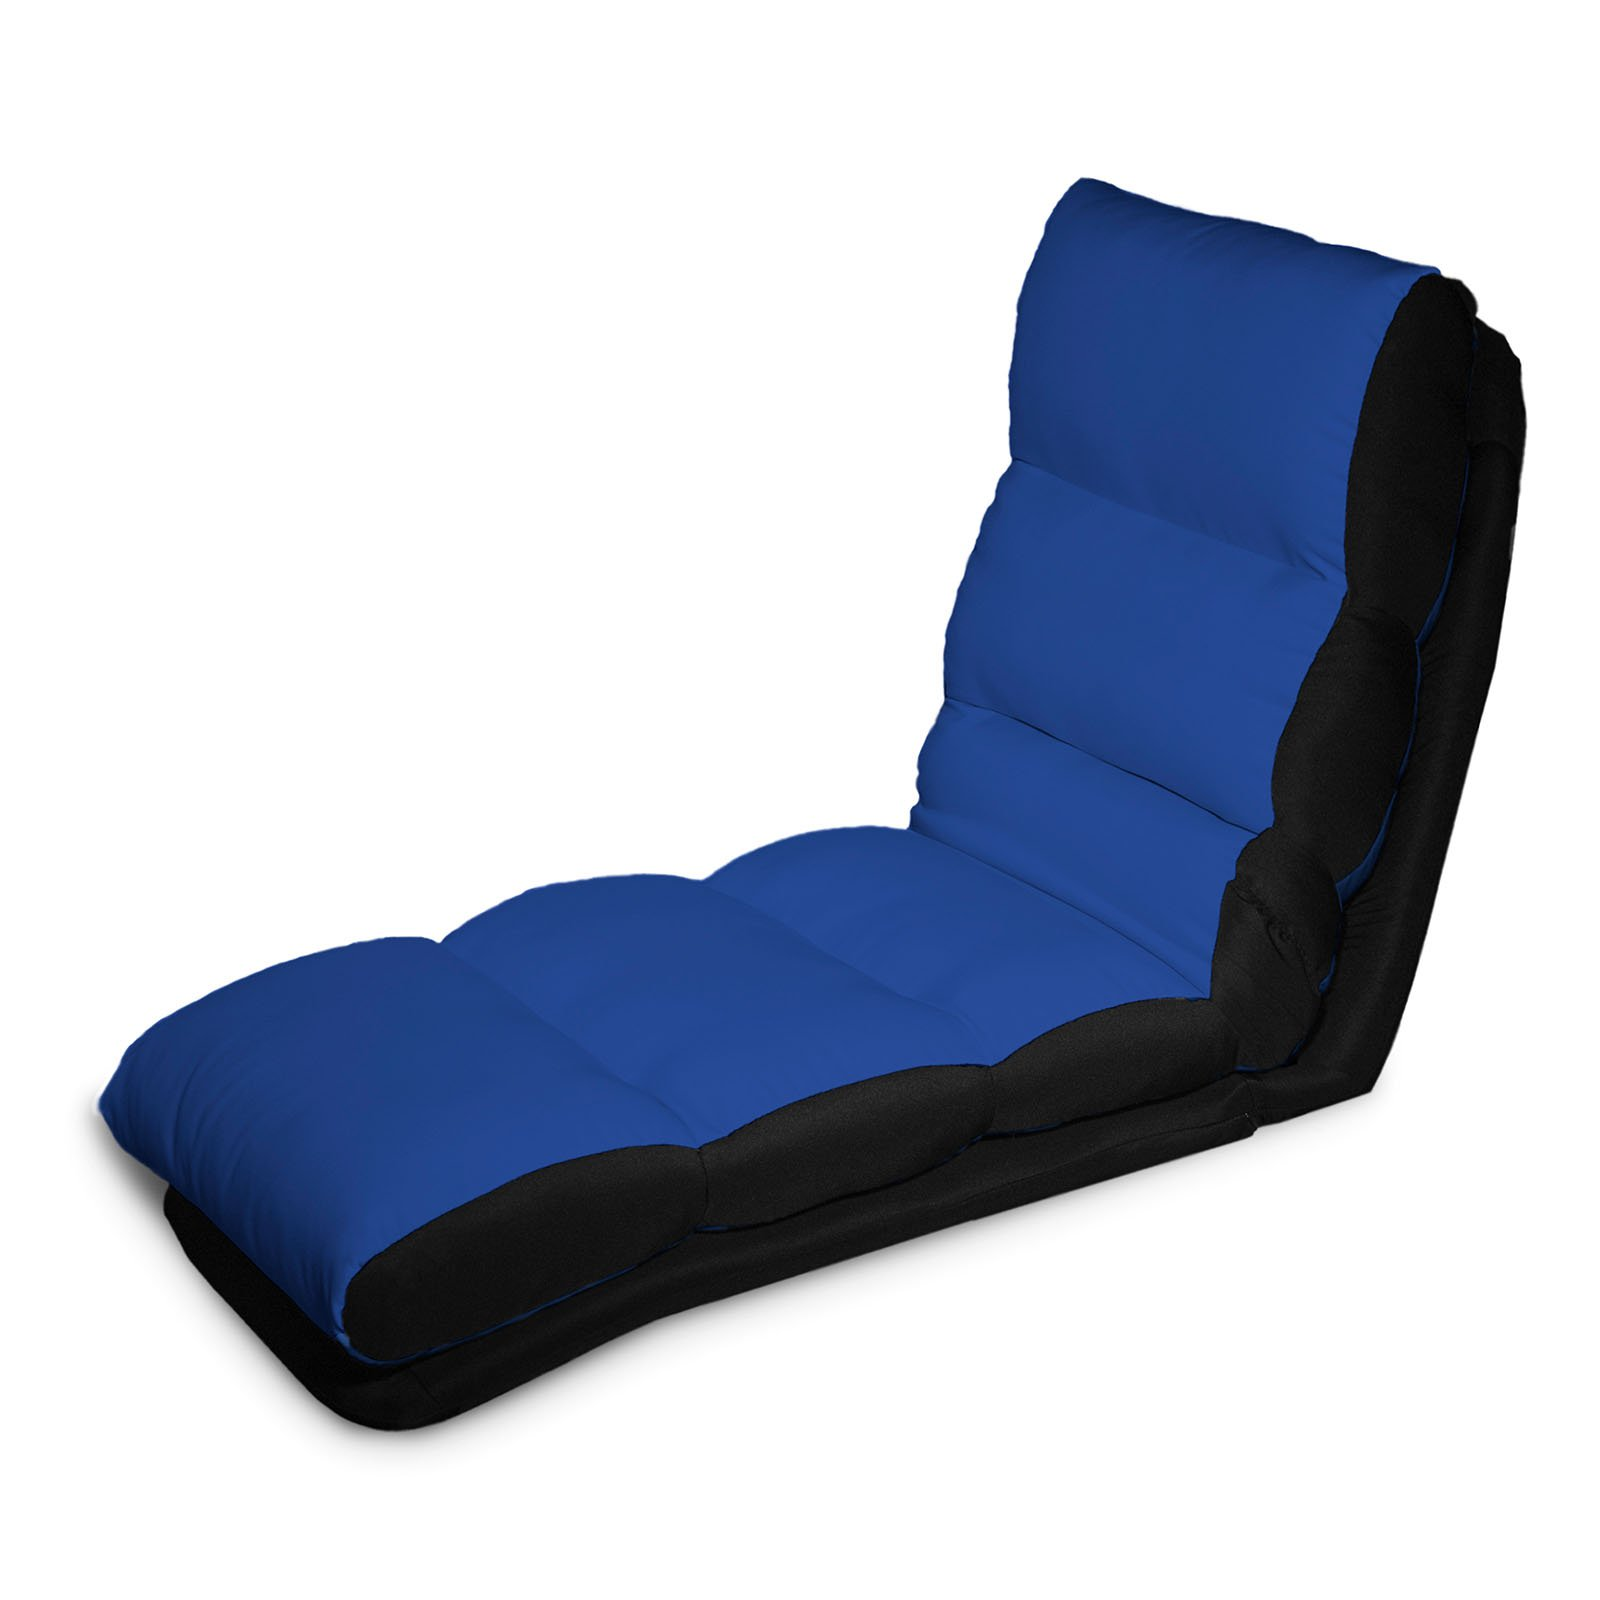 Lifestyle Solutions Turbo Convertible Chaise Lounger   Blue